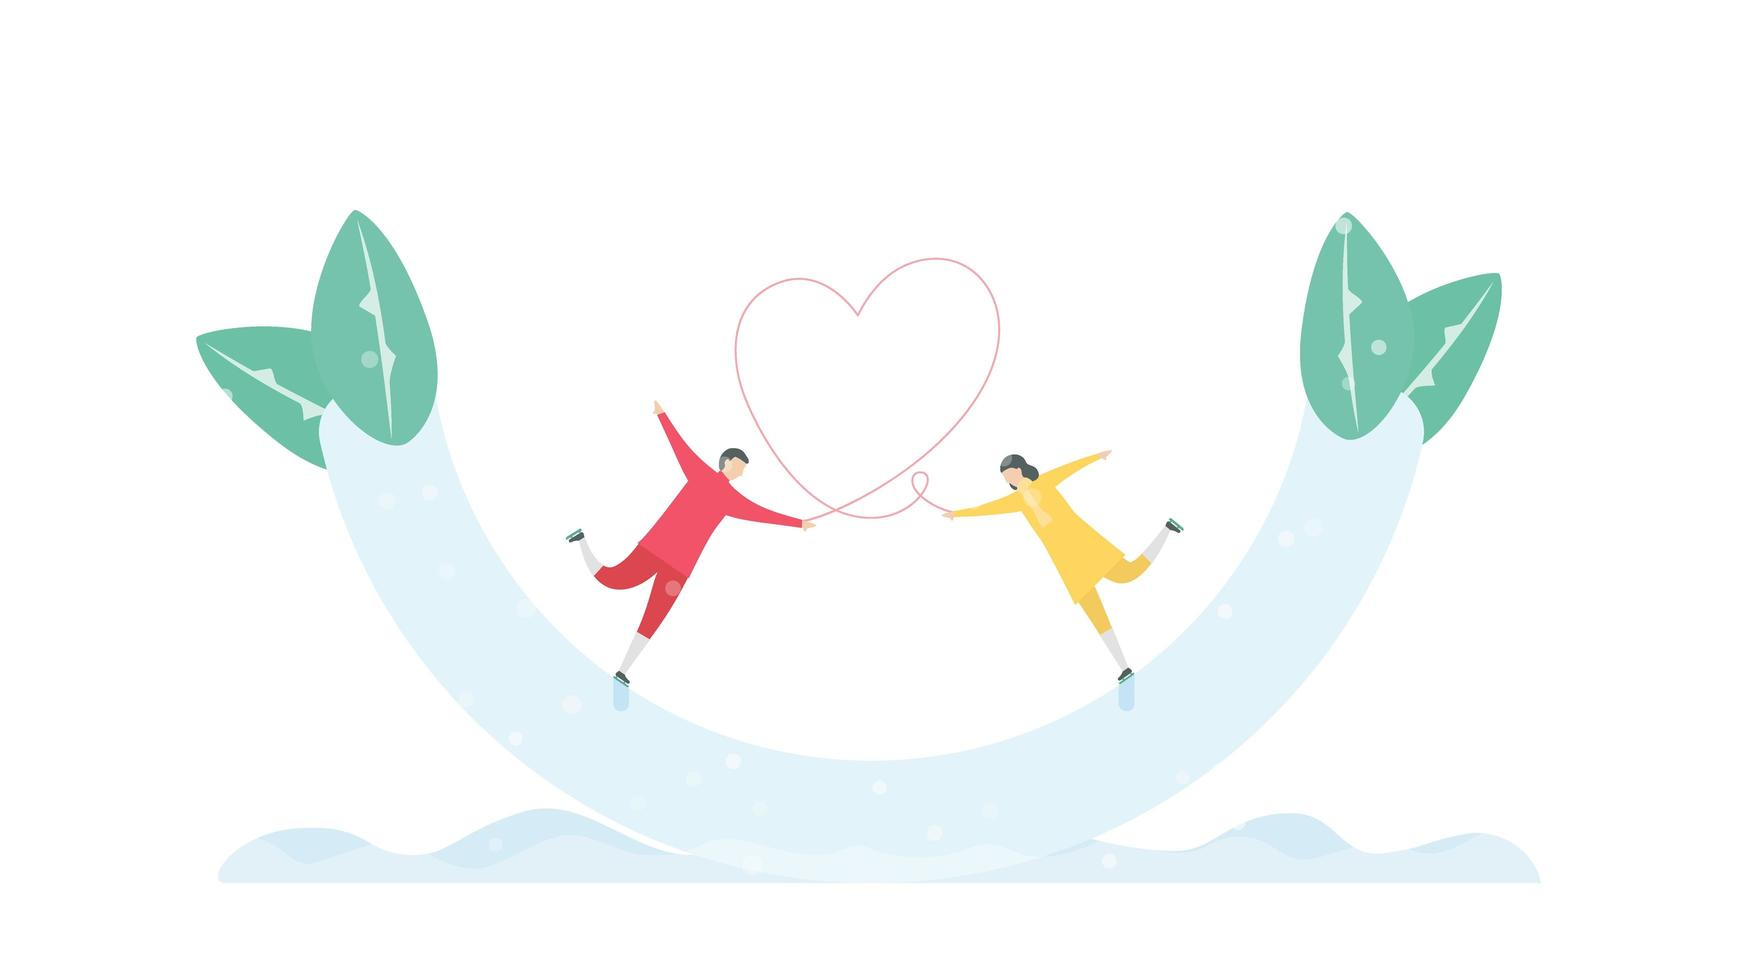 Couple Tethered by Heart Ice Skating in Half Pipe vector